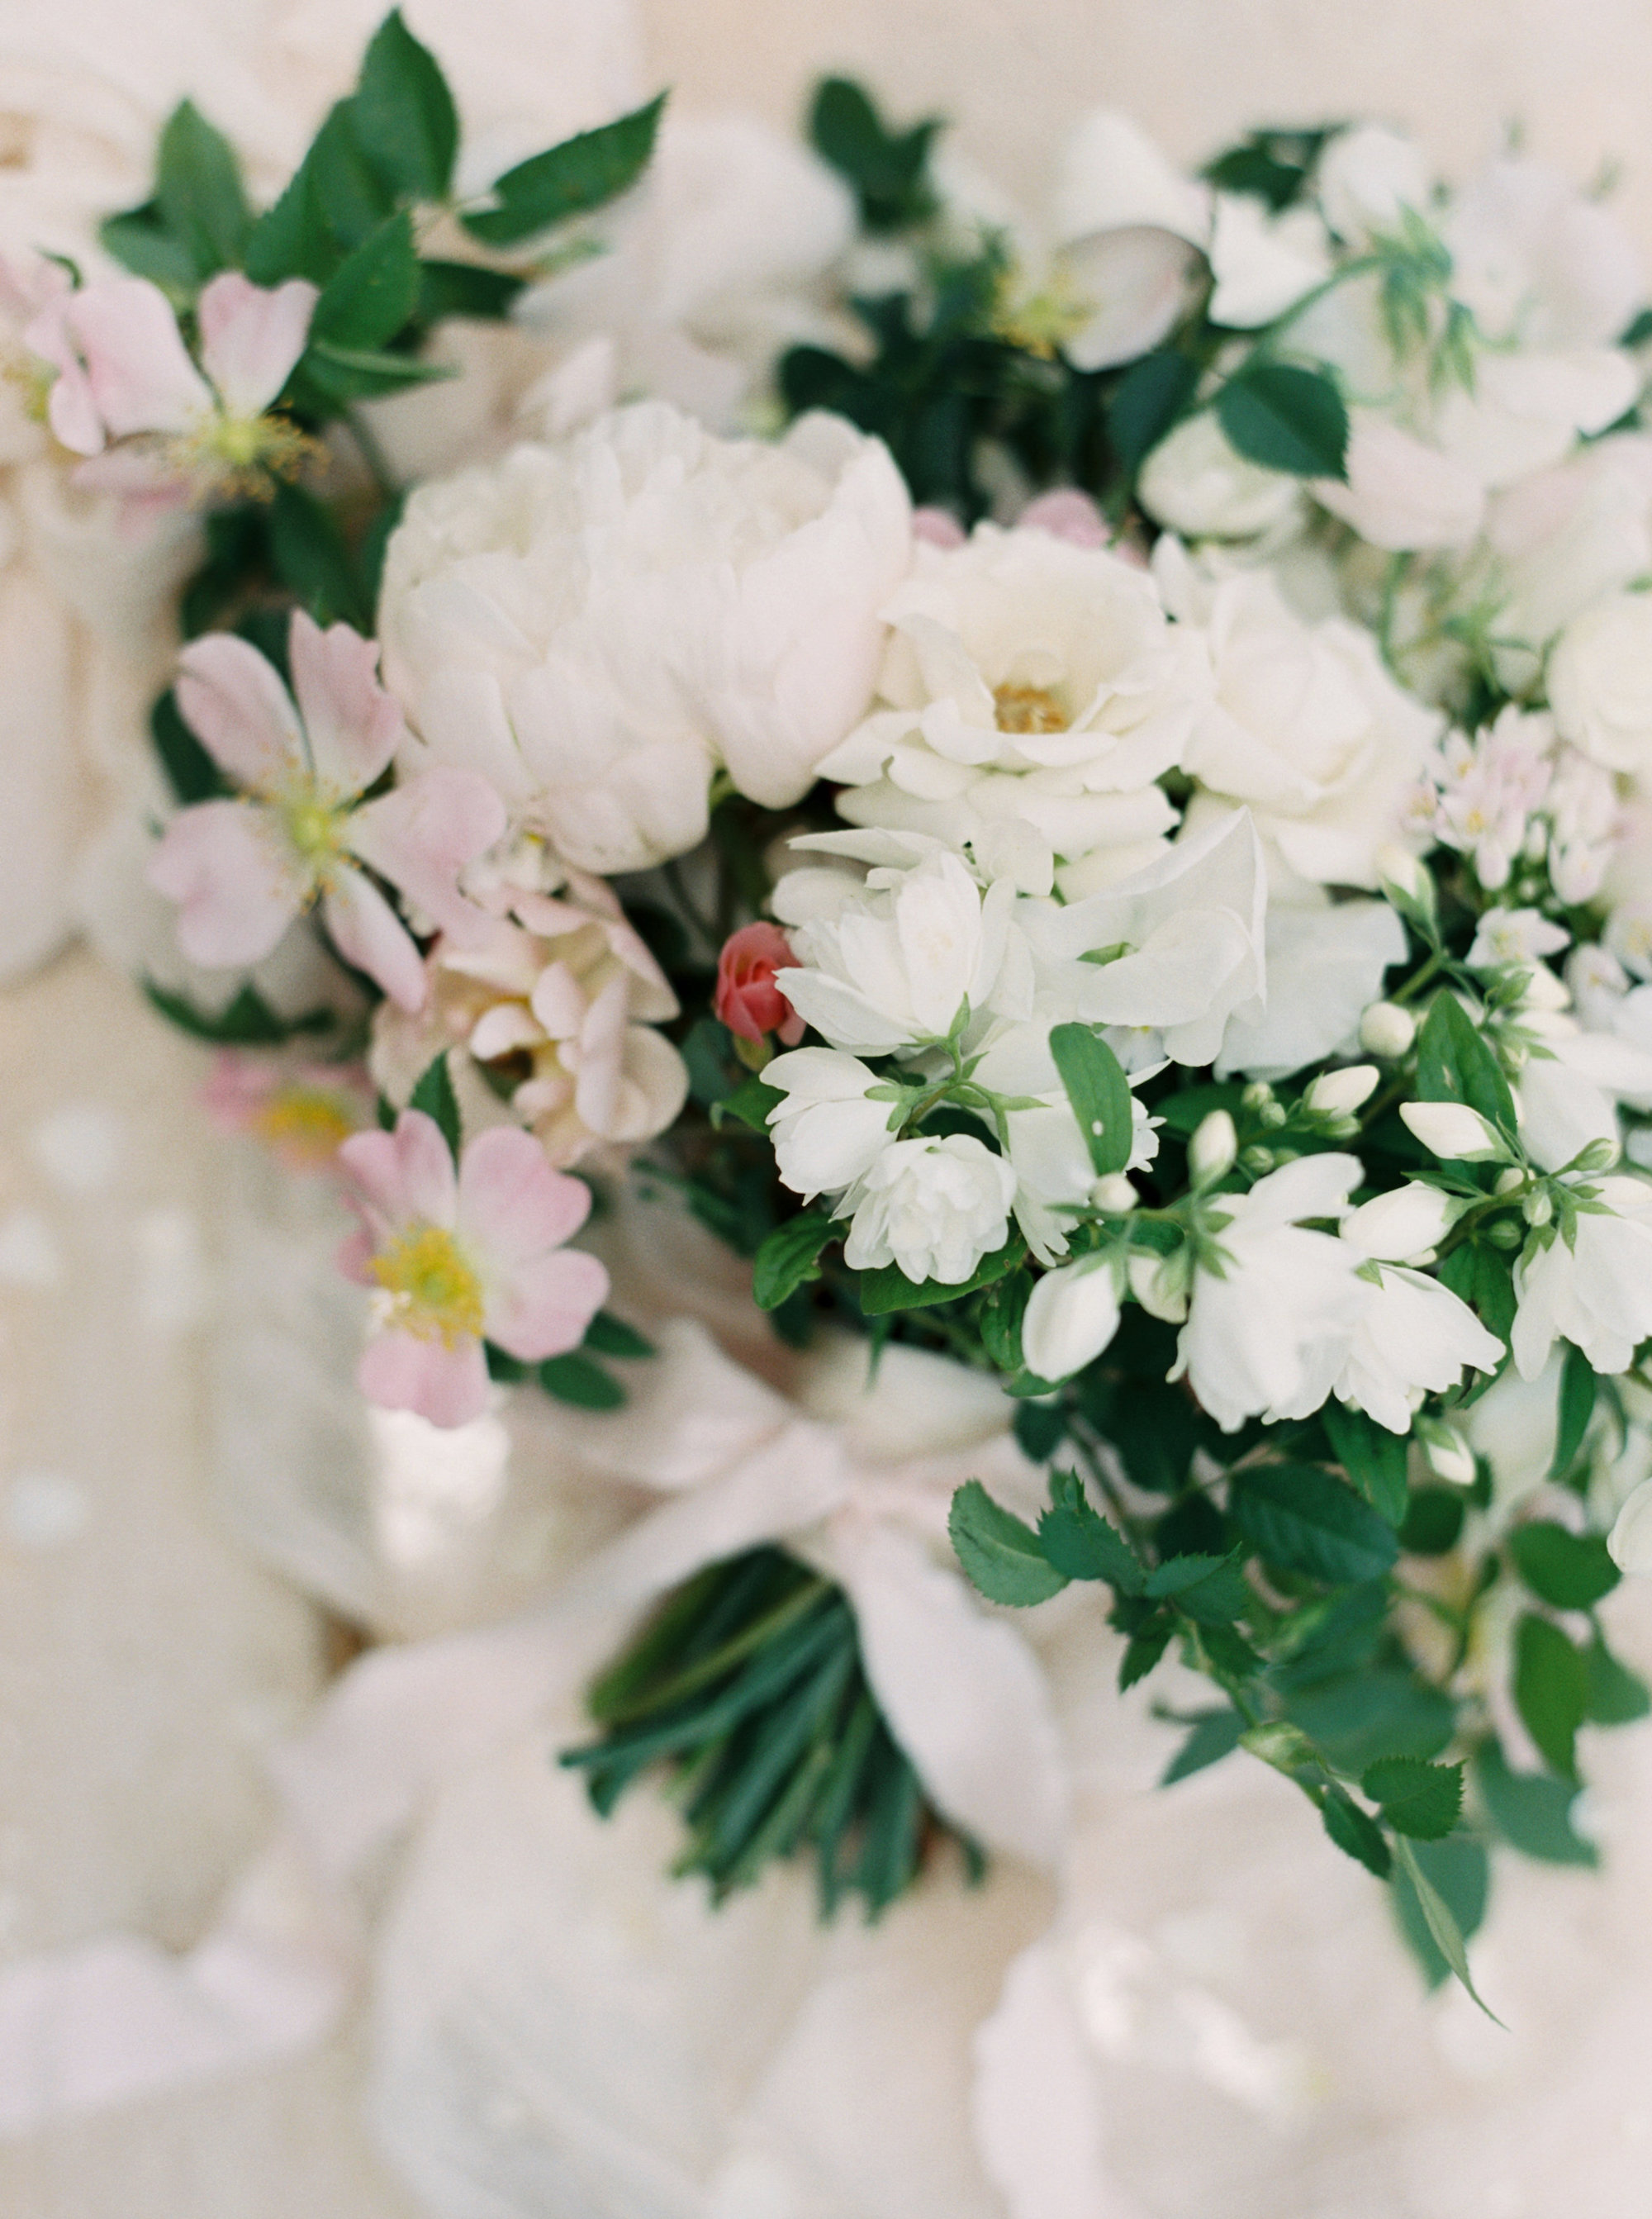 Luxury Wedding Planner UK | Jennifer & Timothy's English Country Manor Wedding | Soft Pink Pale Blue White and Silver Toned Green Neutral Tones American Bride North Cadbury Court | Nicole Colwell Photography 0540.jpg